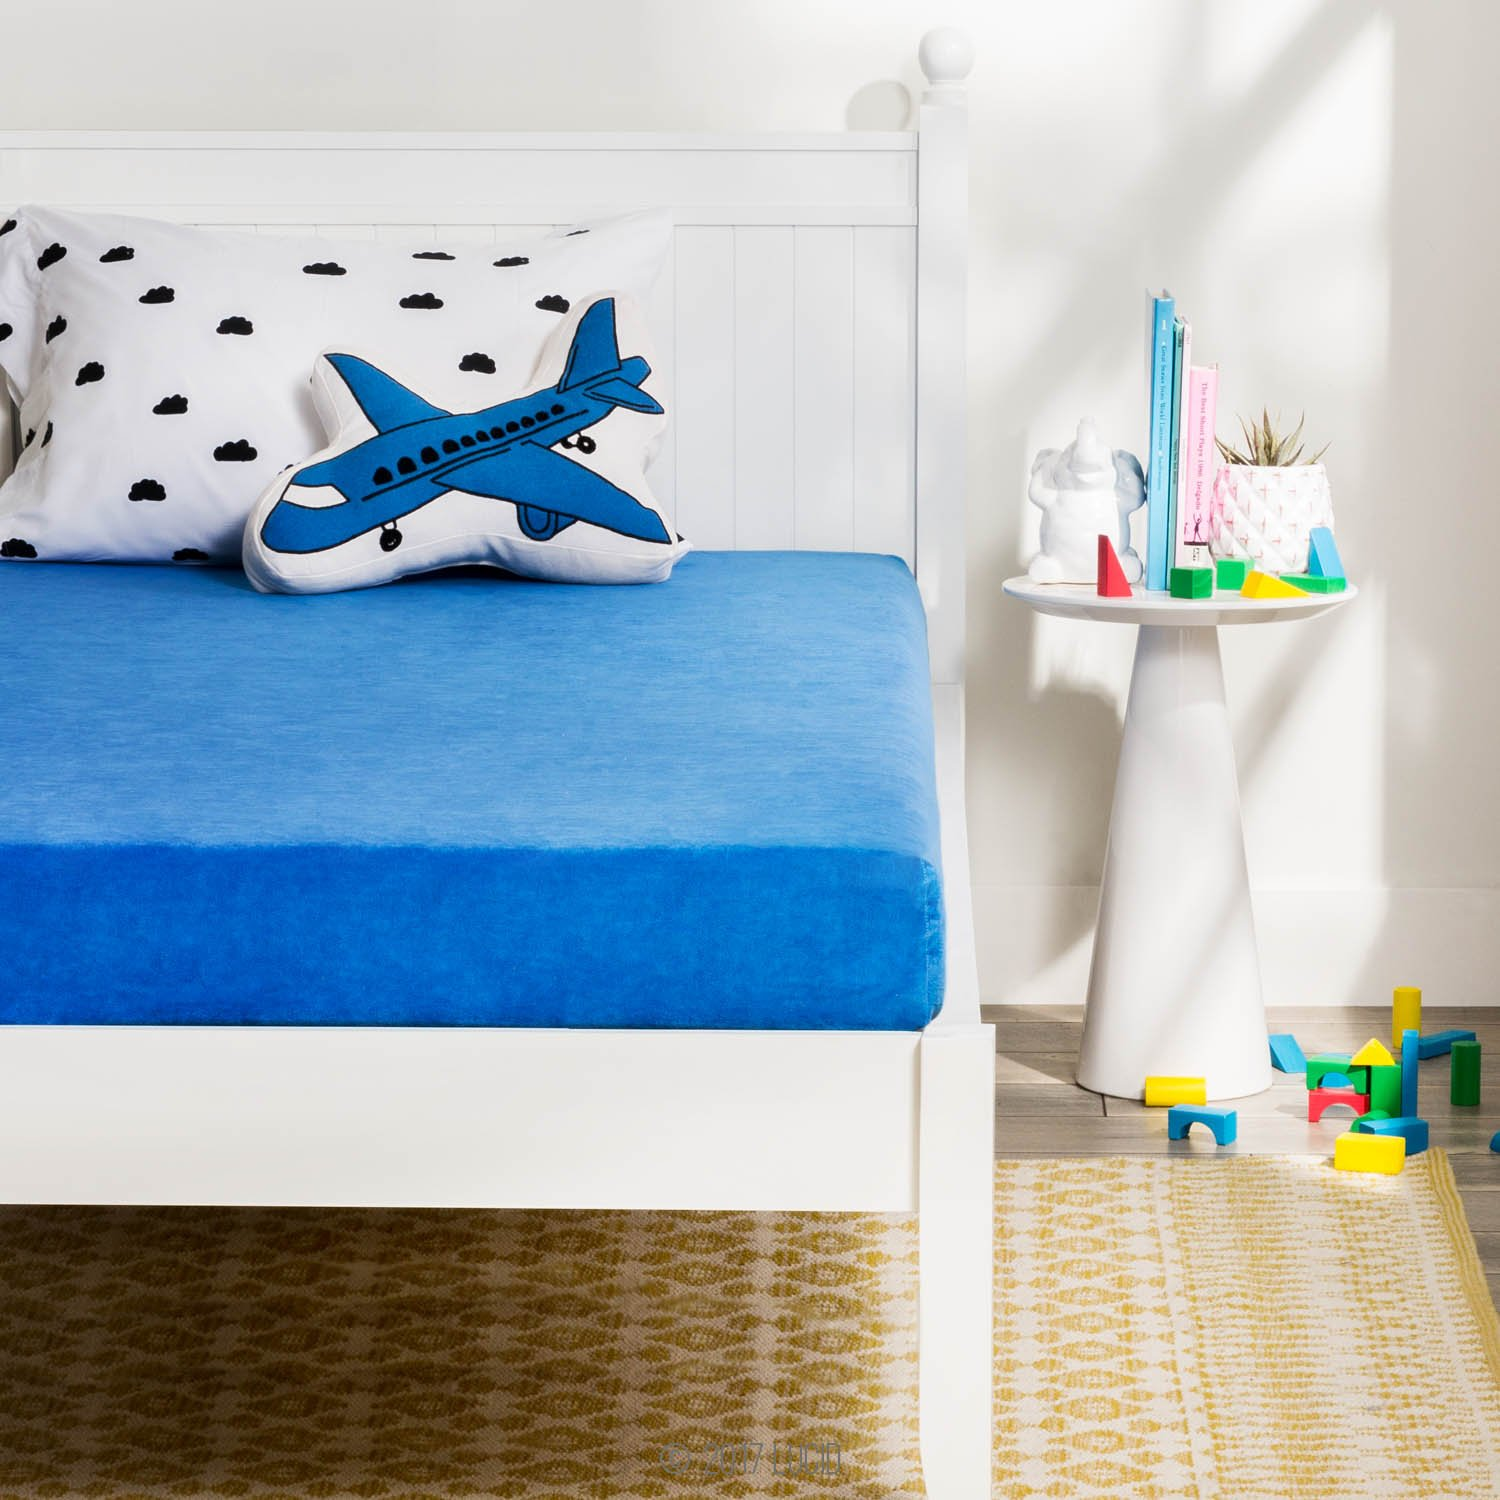 LUCID 6 Inch Youth Gel Memory Foam Mattress - Velour Cover - Great for Children and Teens - Twin - Blue